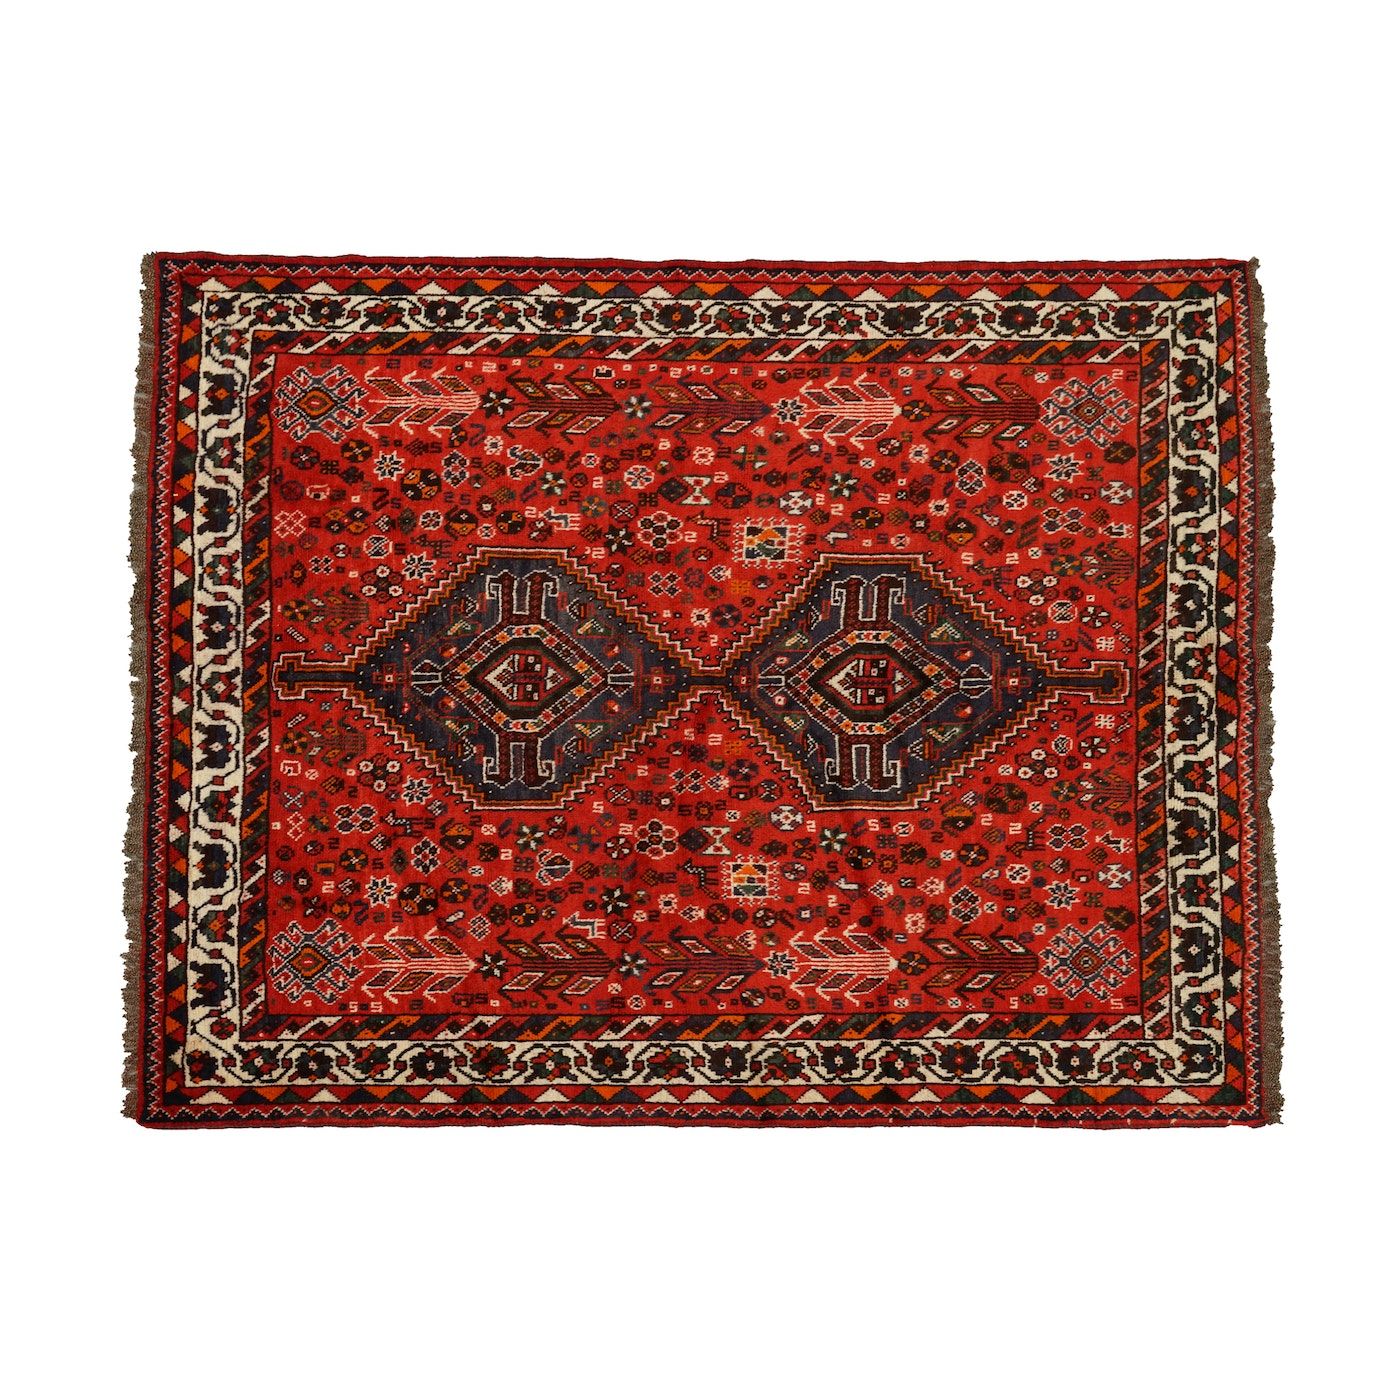 Hand Knotted Persian Wool Area Rug Ebth: Hand-Knotted Persian Shiraz Wool Area Rug